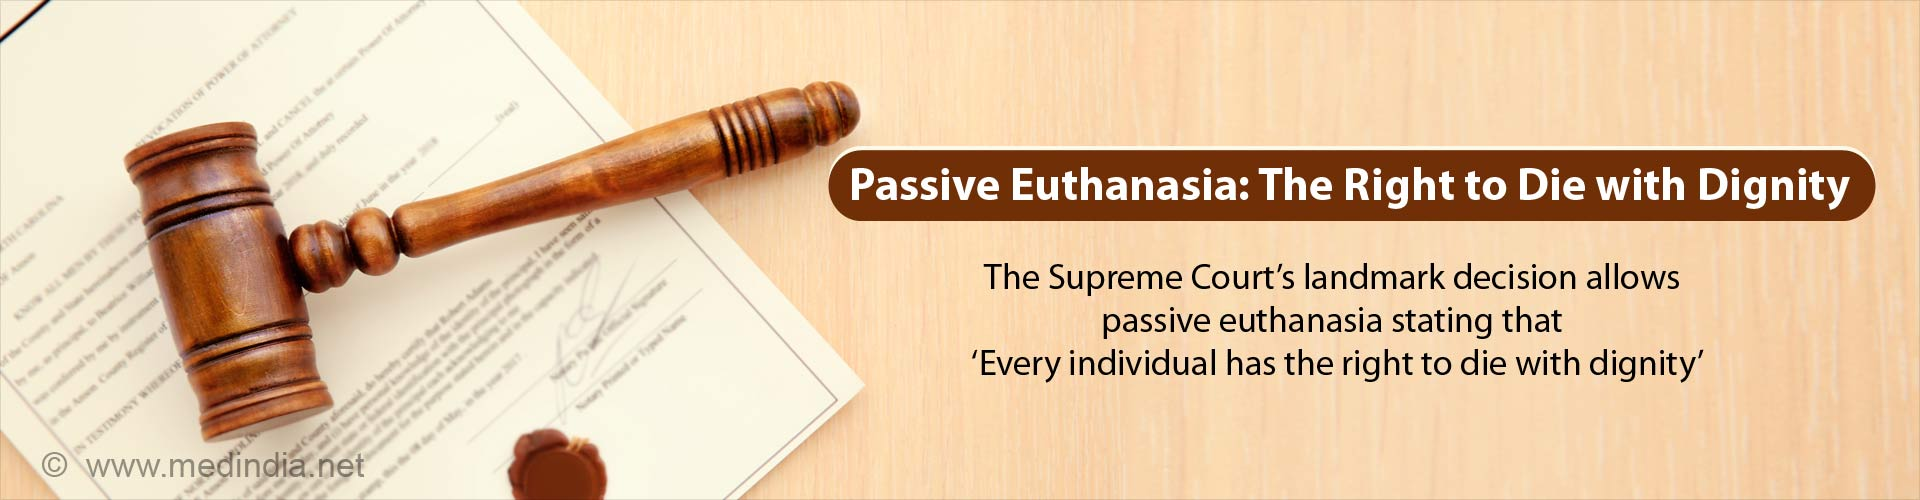 Indian Supreme Court Allows the 'Right to Die With Dignity' and Makes Passive Euthanasia Easier to Implement